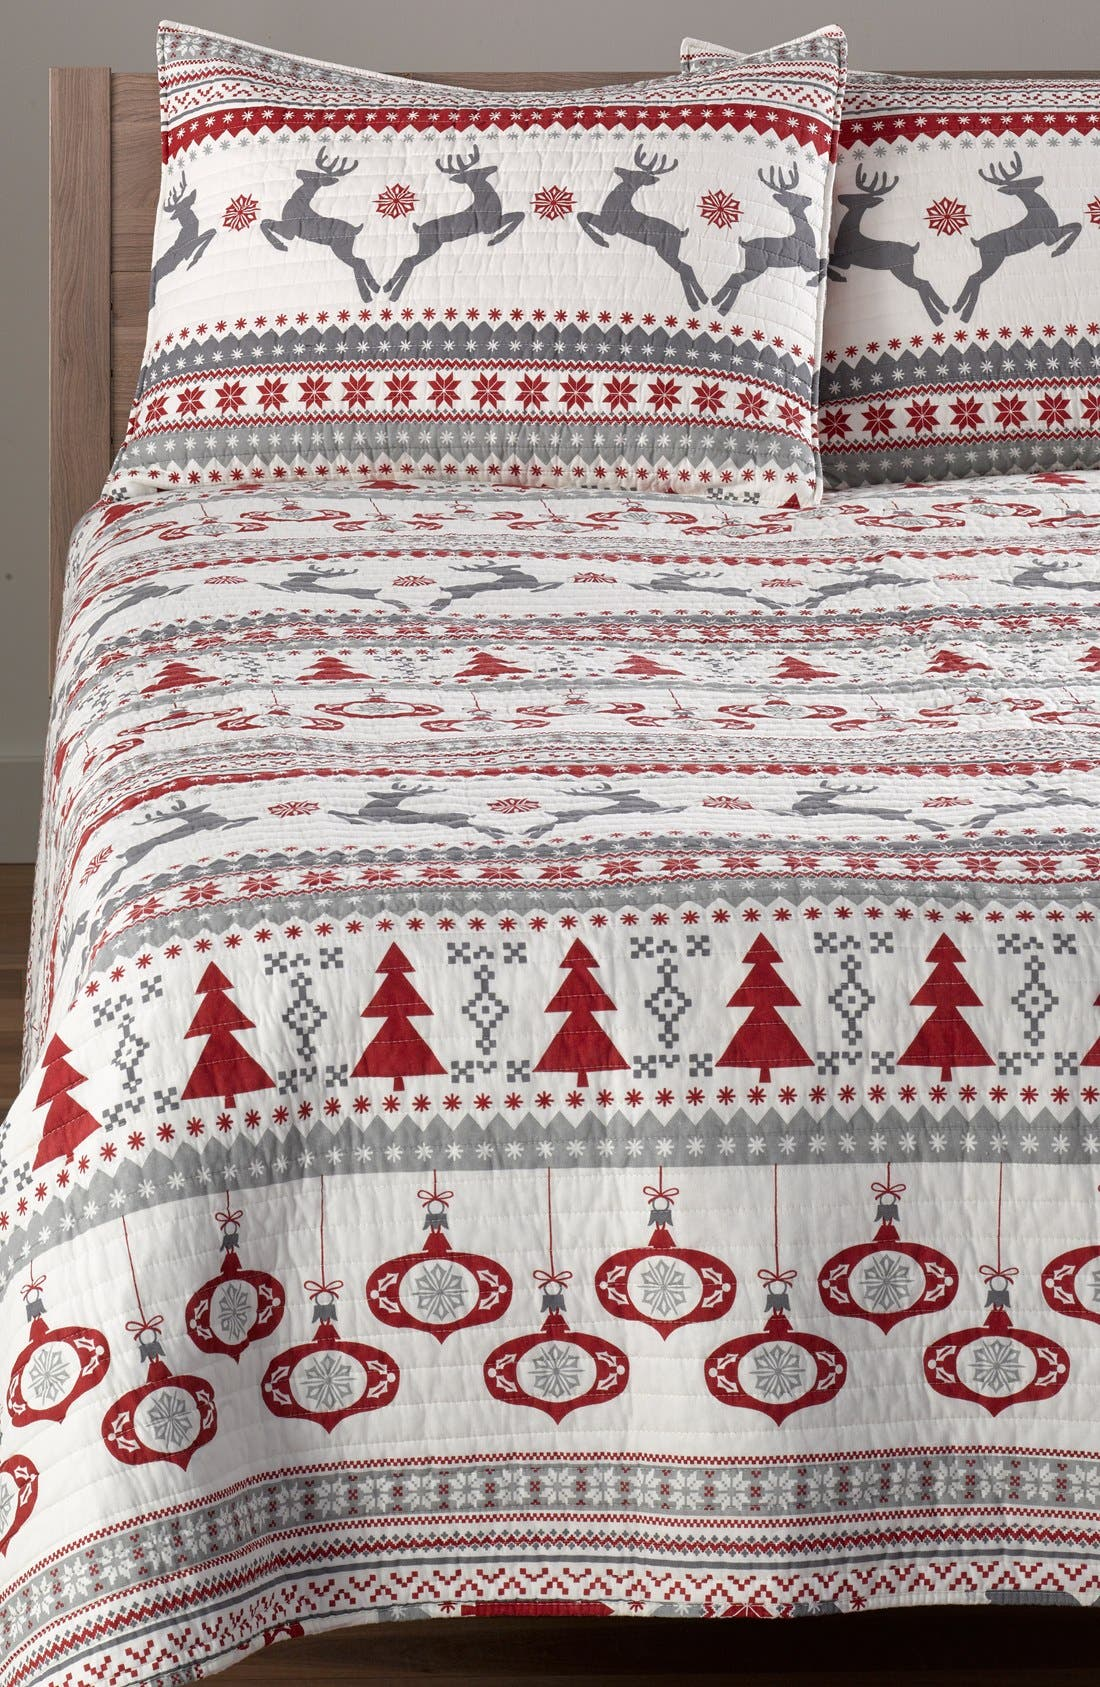 LEVTEX 'Silver Bells' Reversible Quilt, Main, color, 600